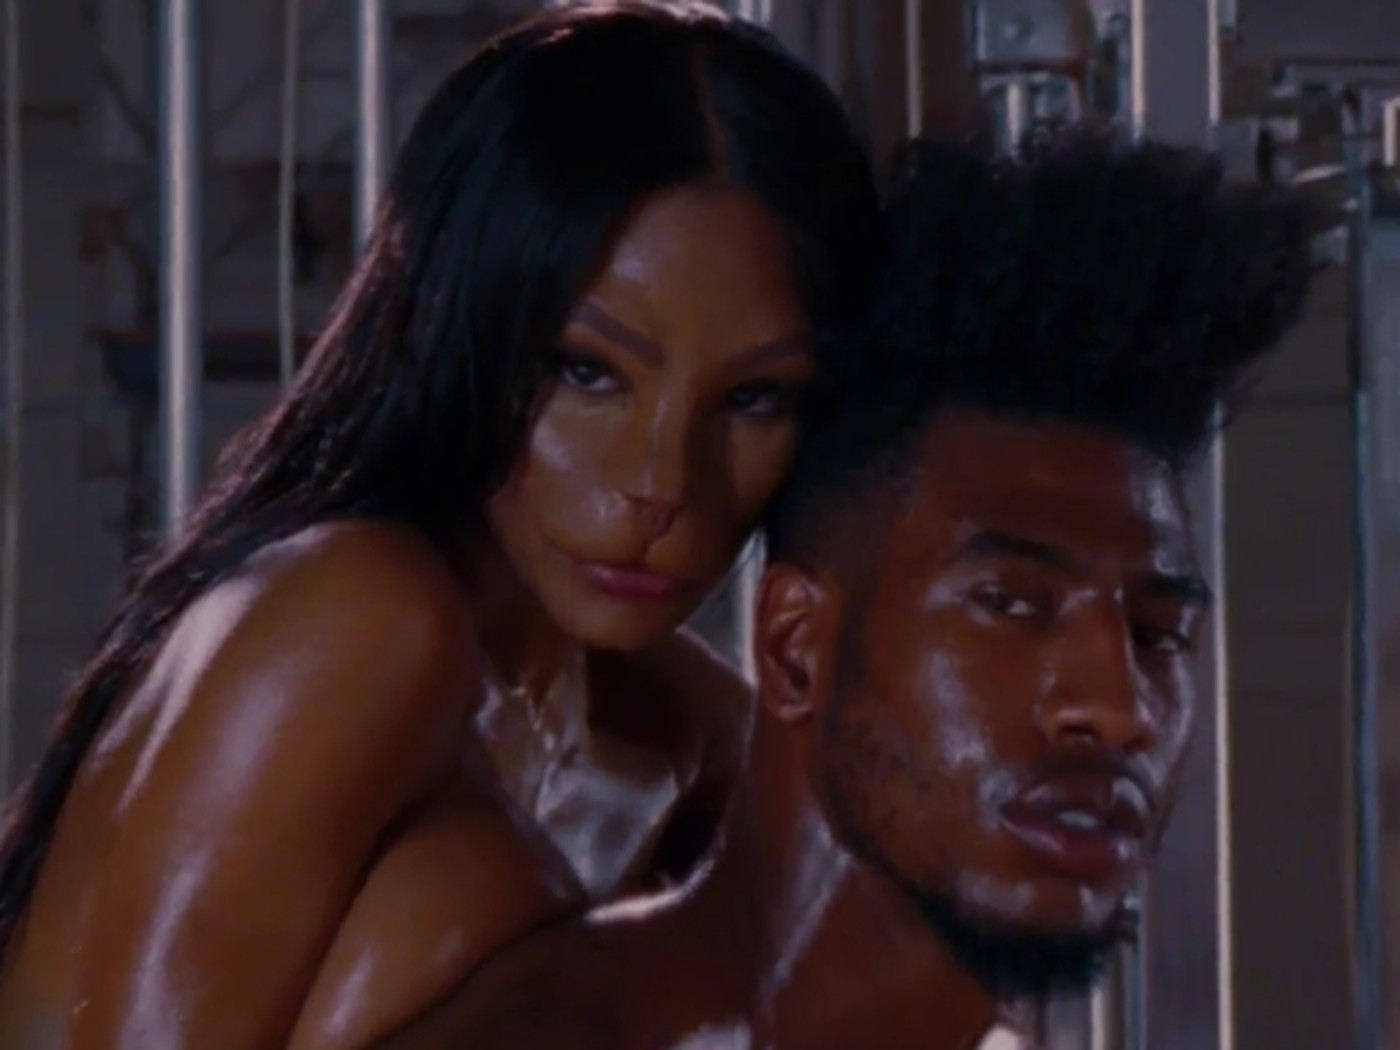 Iman Shumpert And Fiancée Teyana Taylor Made A Very Oiled Up